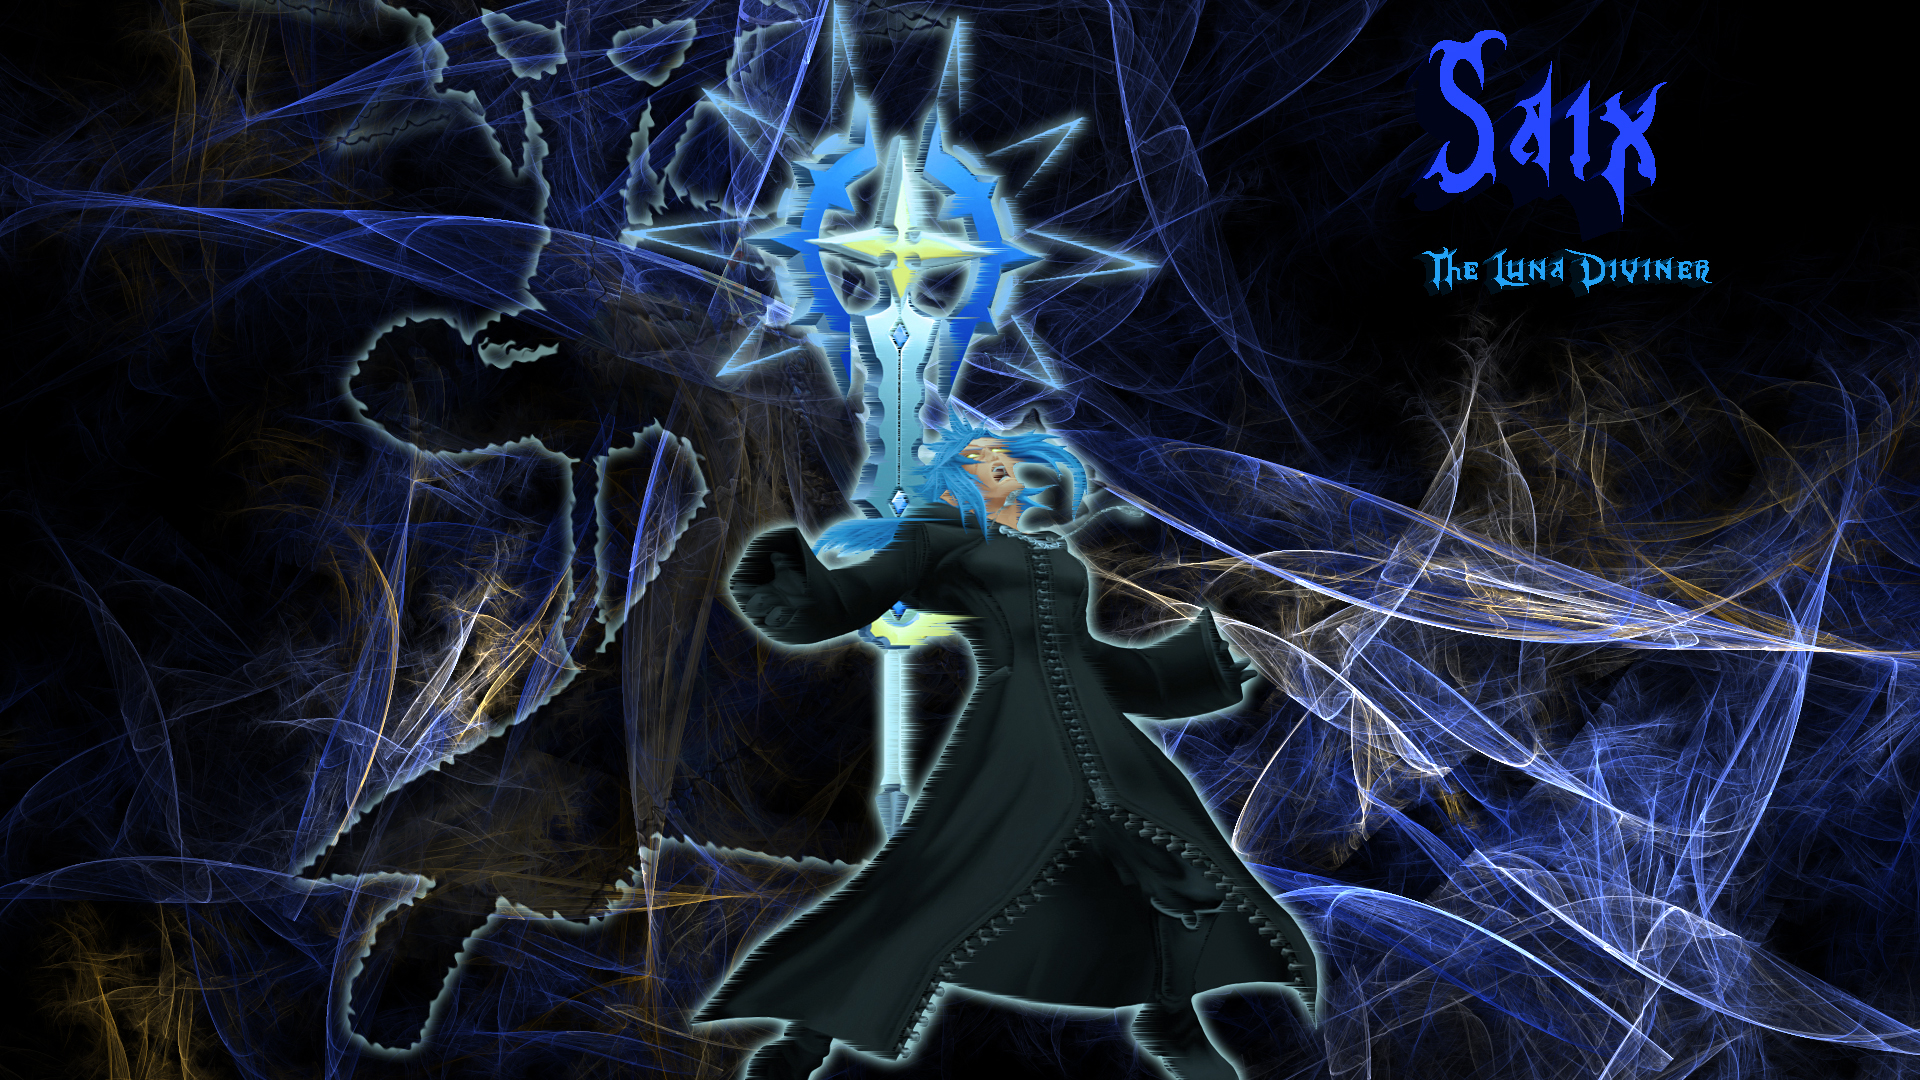 Best 54 Saix Wallpaper on HipWallpaper Saix Wallpaper 1920x1080